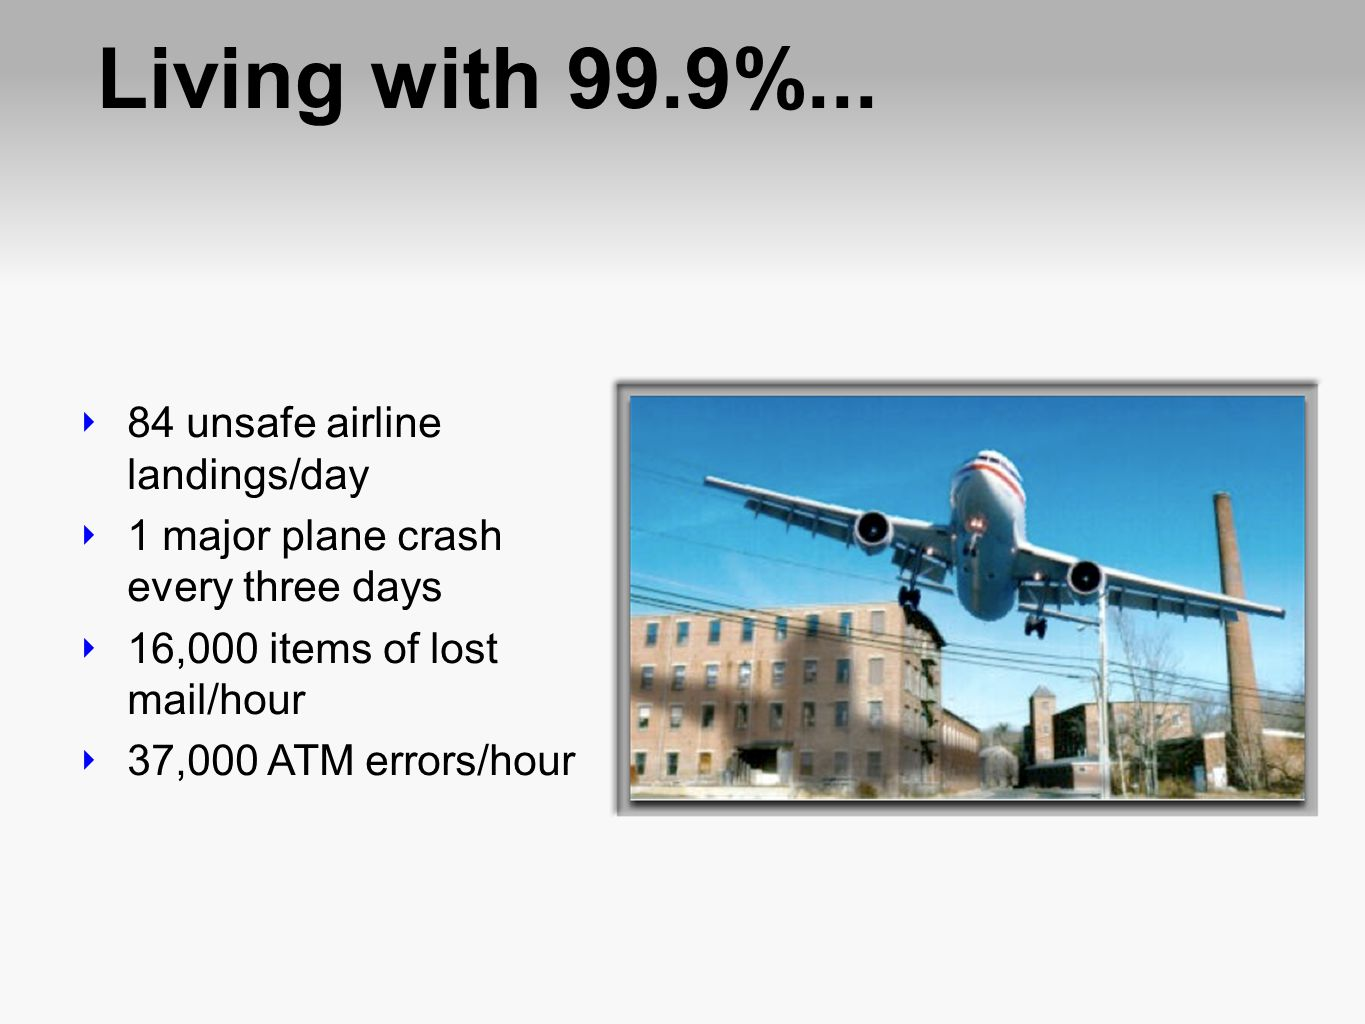 Living with 99.9%... 84 unsafe airline landings/day